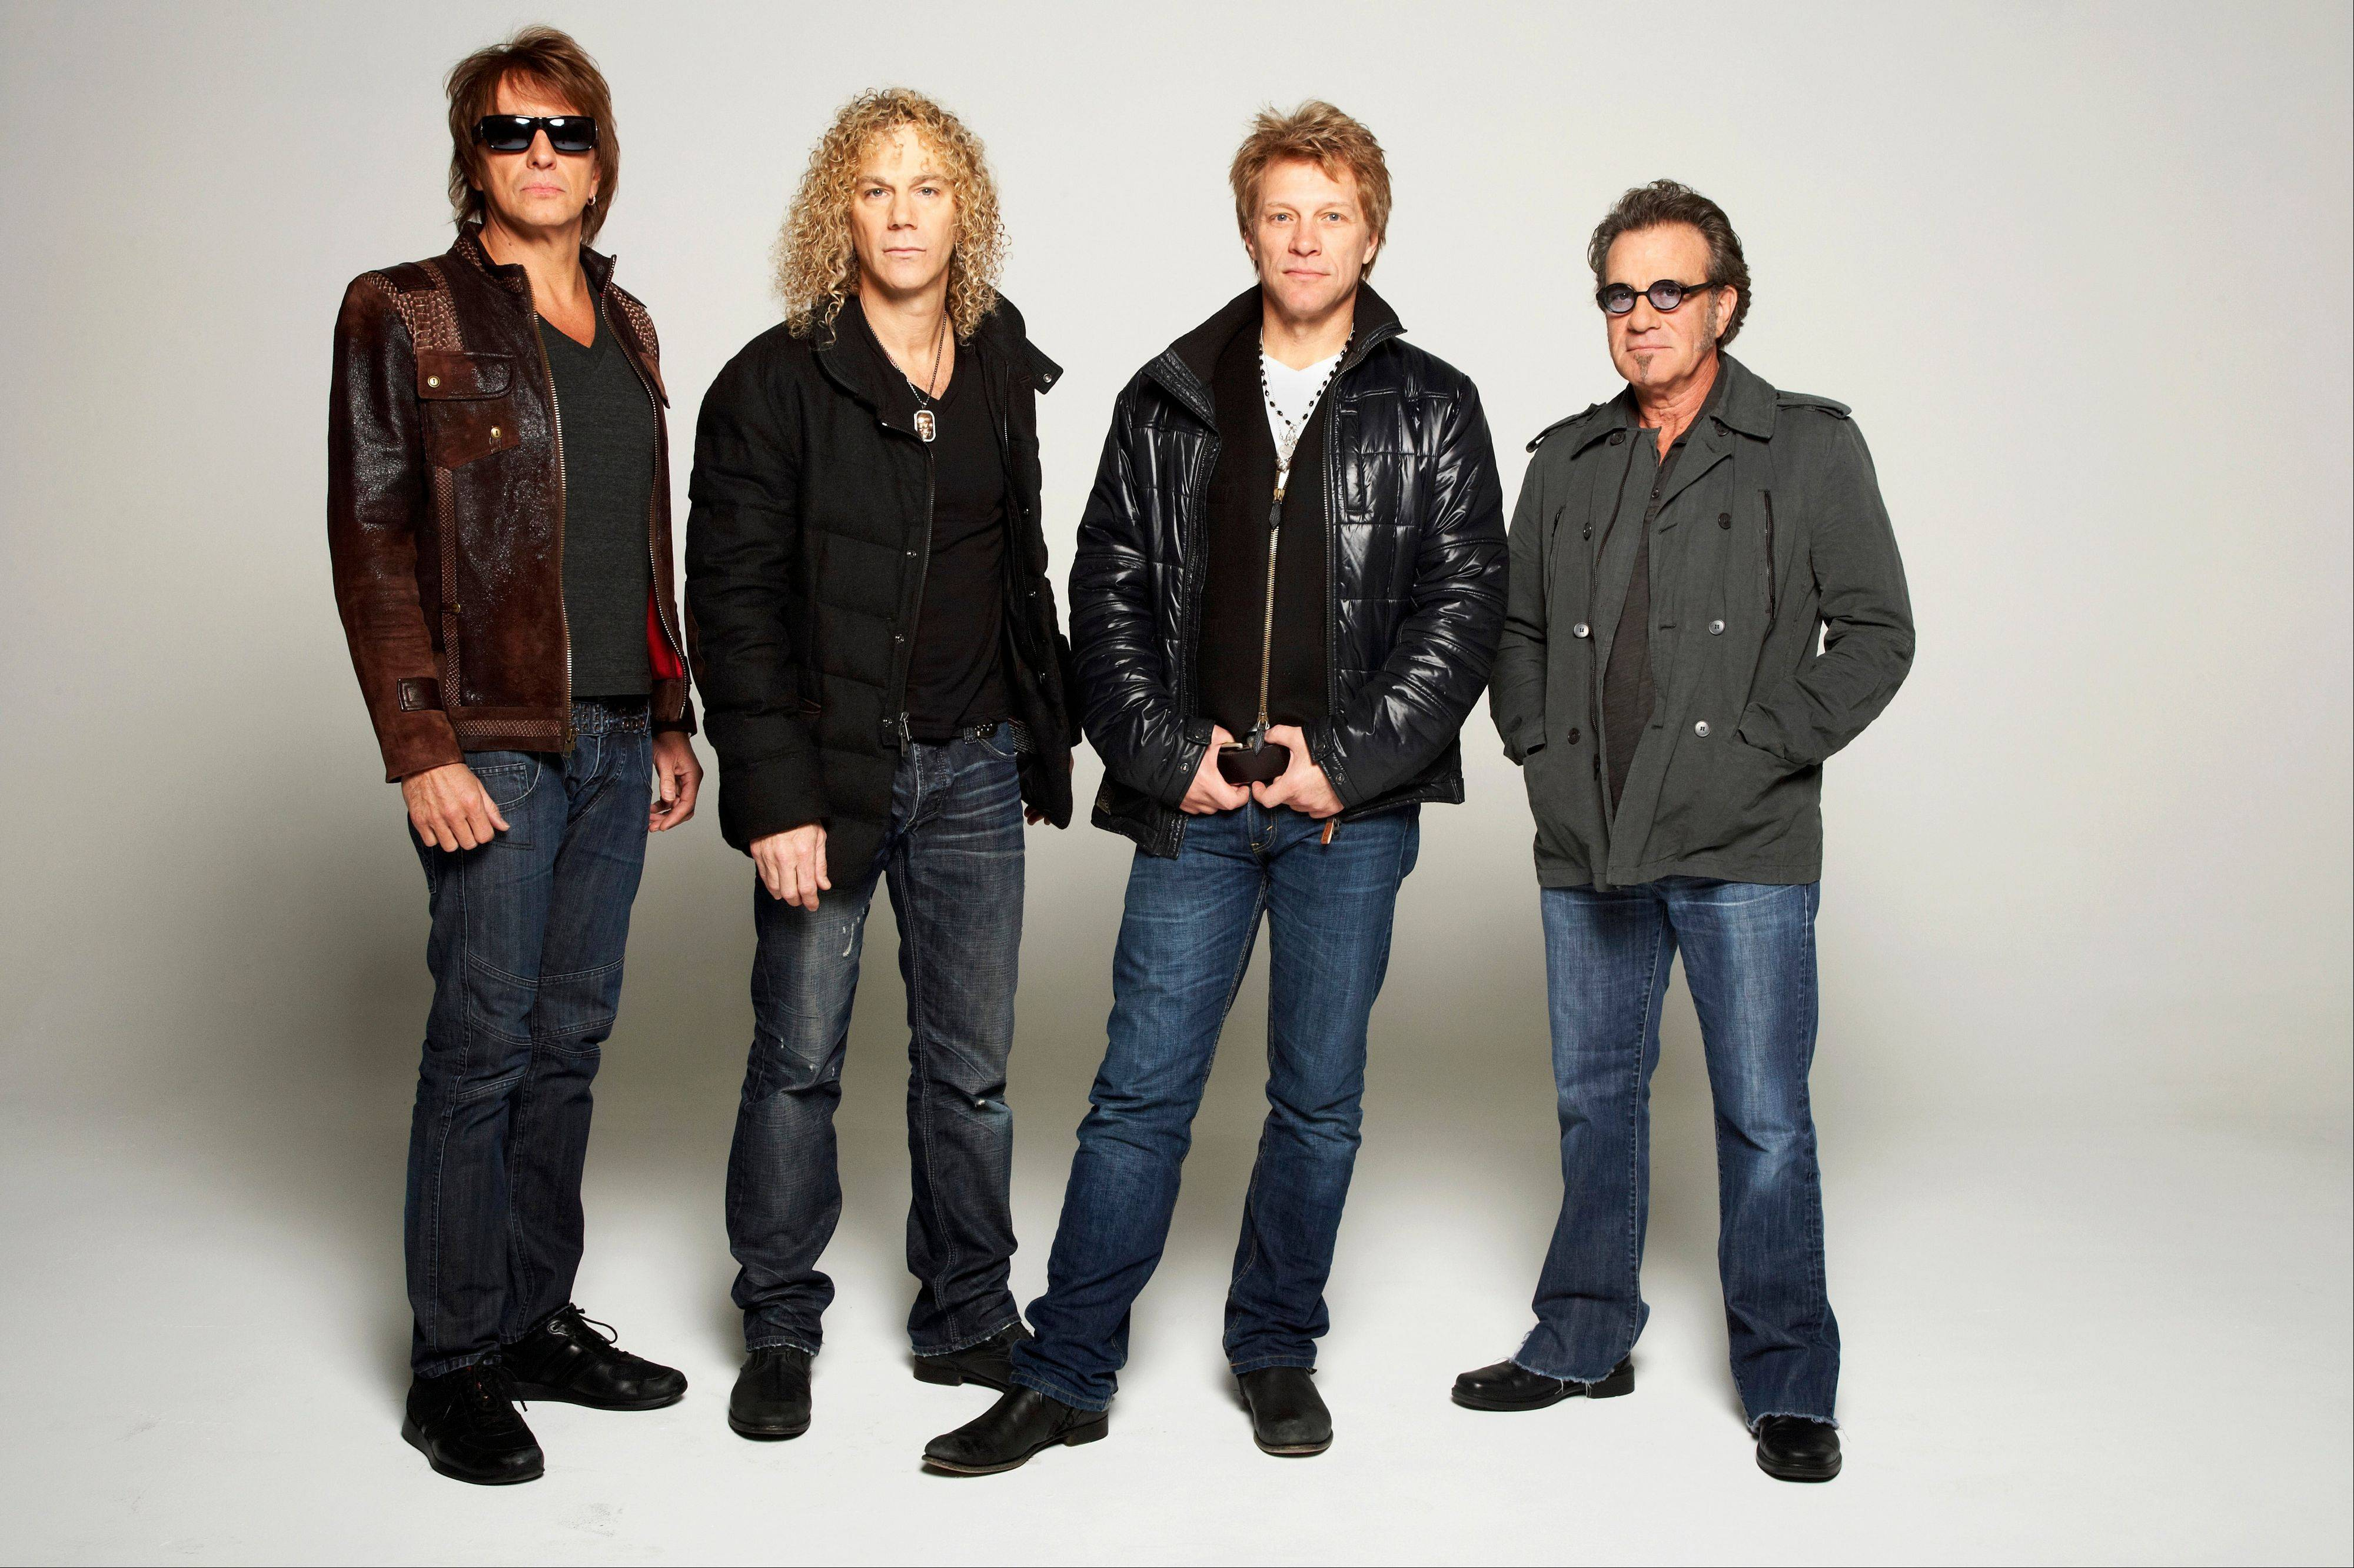 Bon Jovi — Richie Sambora, left, David Bryan, Jon Bon Jovi and Tico Torres — postponed their Tuesday show in Mexico City after Torres' emergency appendectomy in Mexico City.